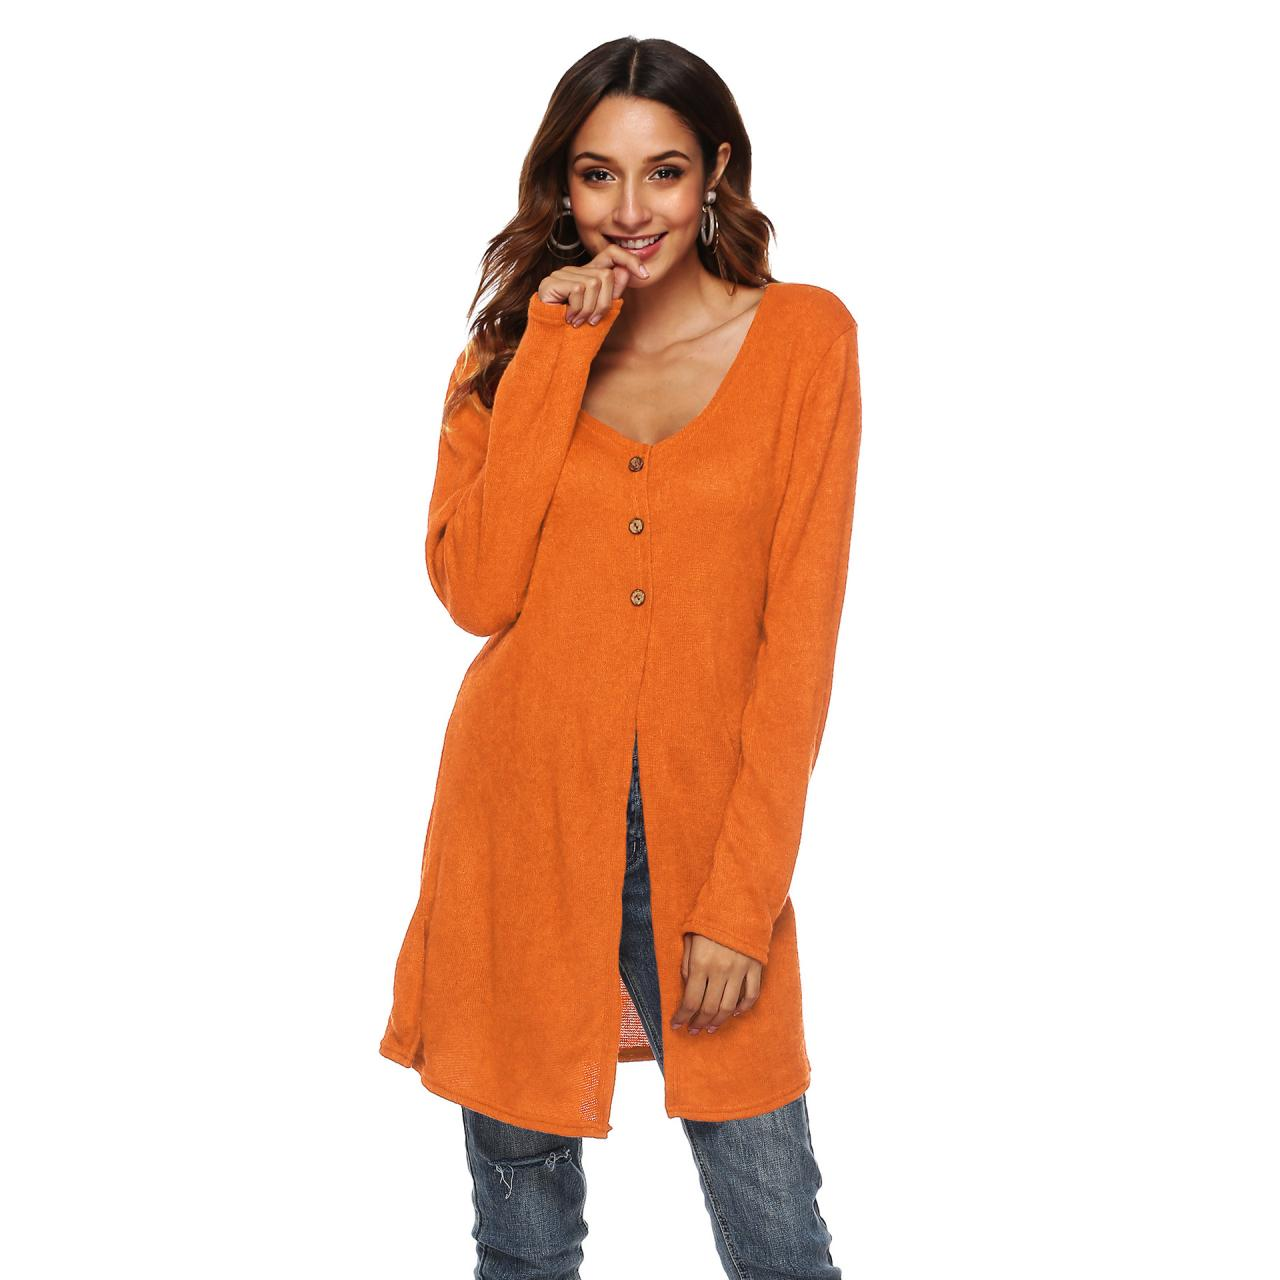 Women Long Sleeve T-Shirt Autumn Asymmetrical High Split Button Casual Long Cardigan Coat Outerwear orange